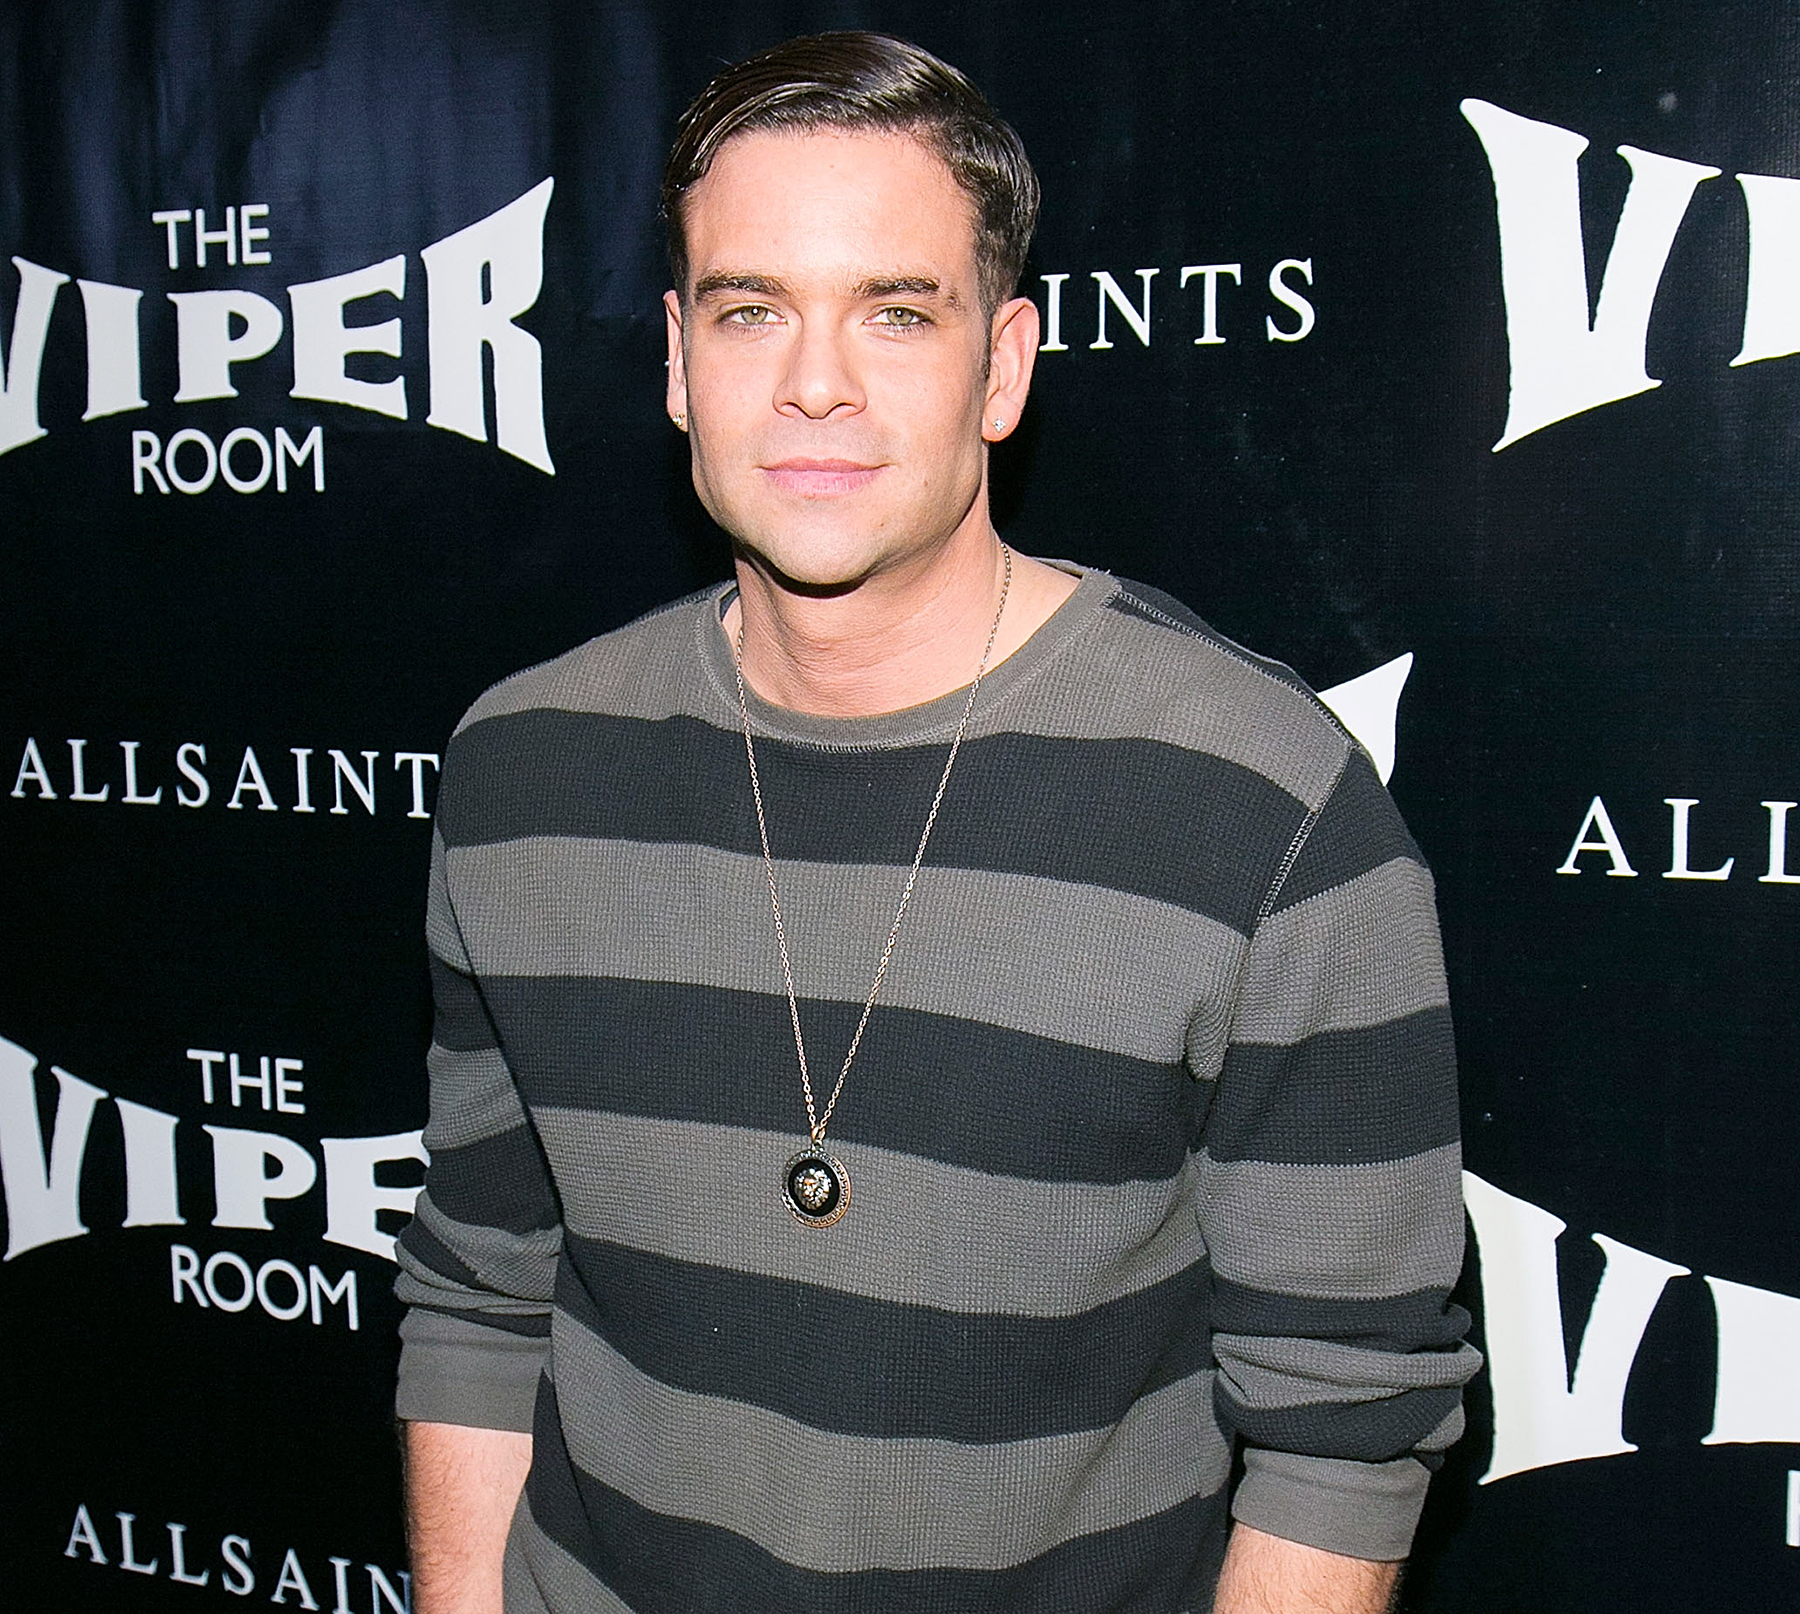 Mark Salling commits suicide